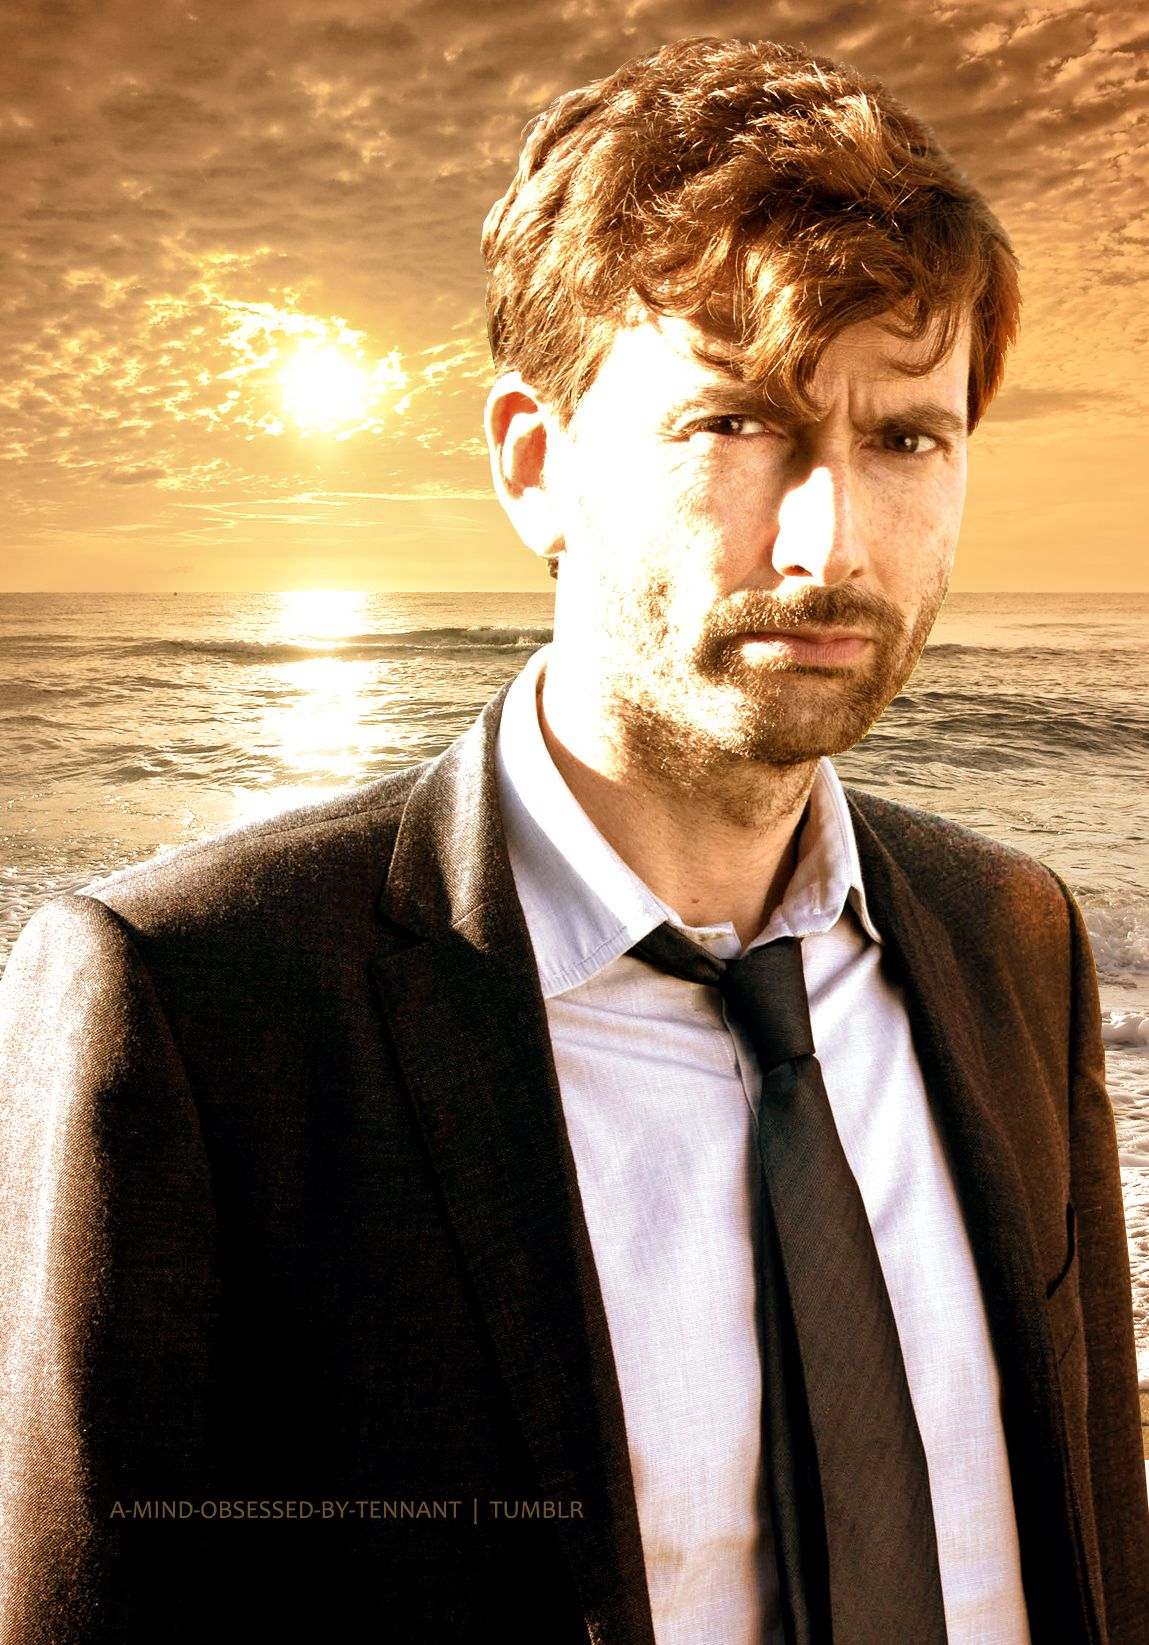 a-mind-obsessed-by-tennant: david tennant + broadchurch